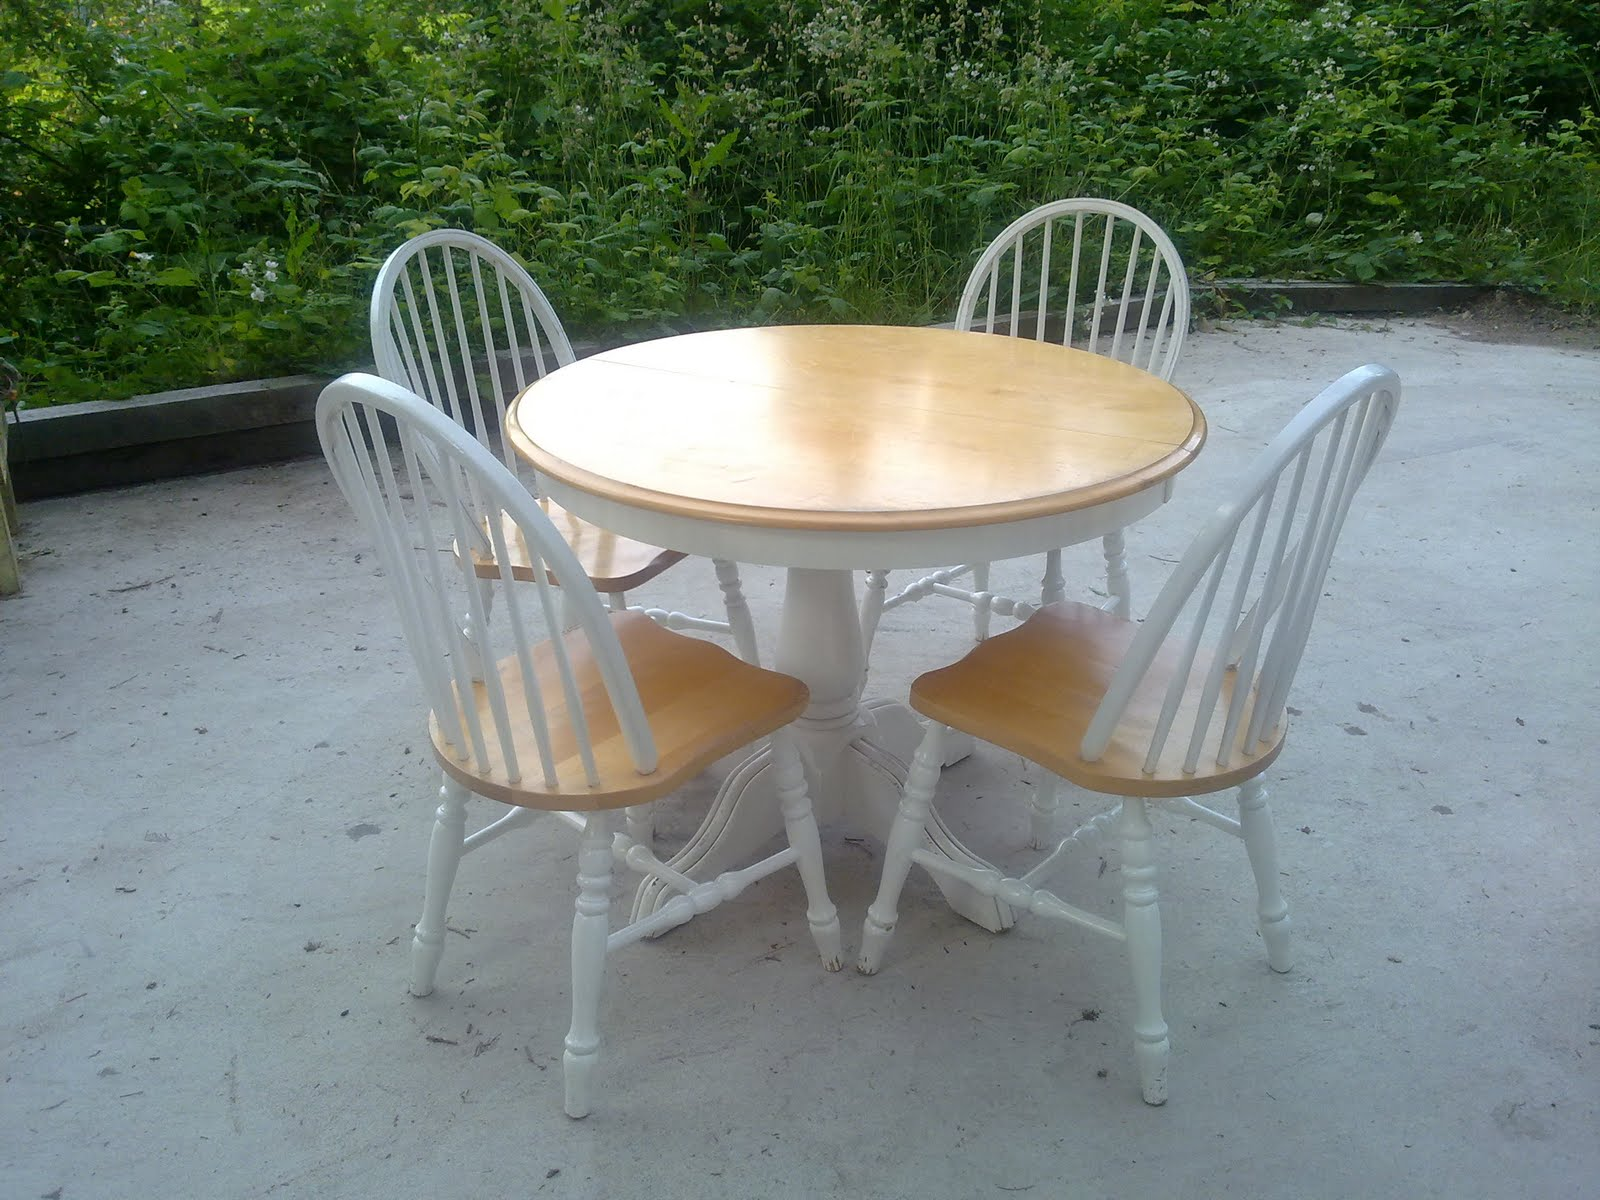 Shabby Chic Dining Table And 4 Chairs, A Classic Dining Set With Extra Leaf  And Comfortable Chairs $195